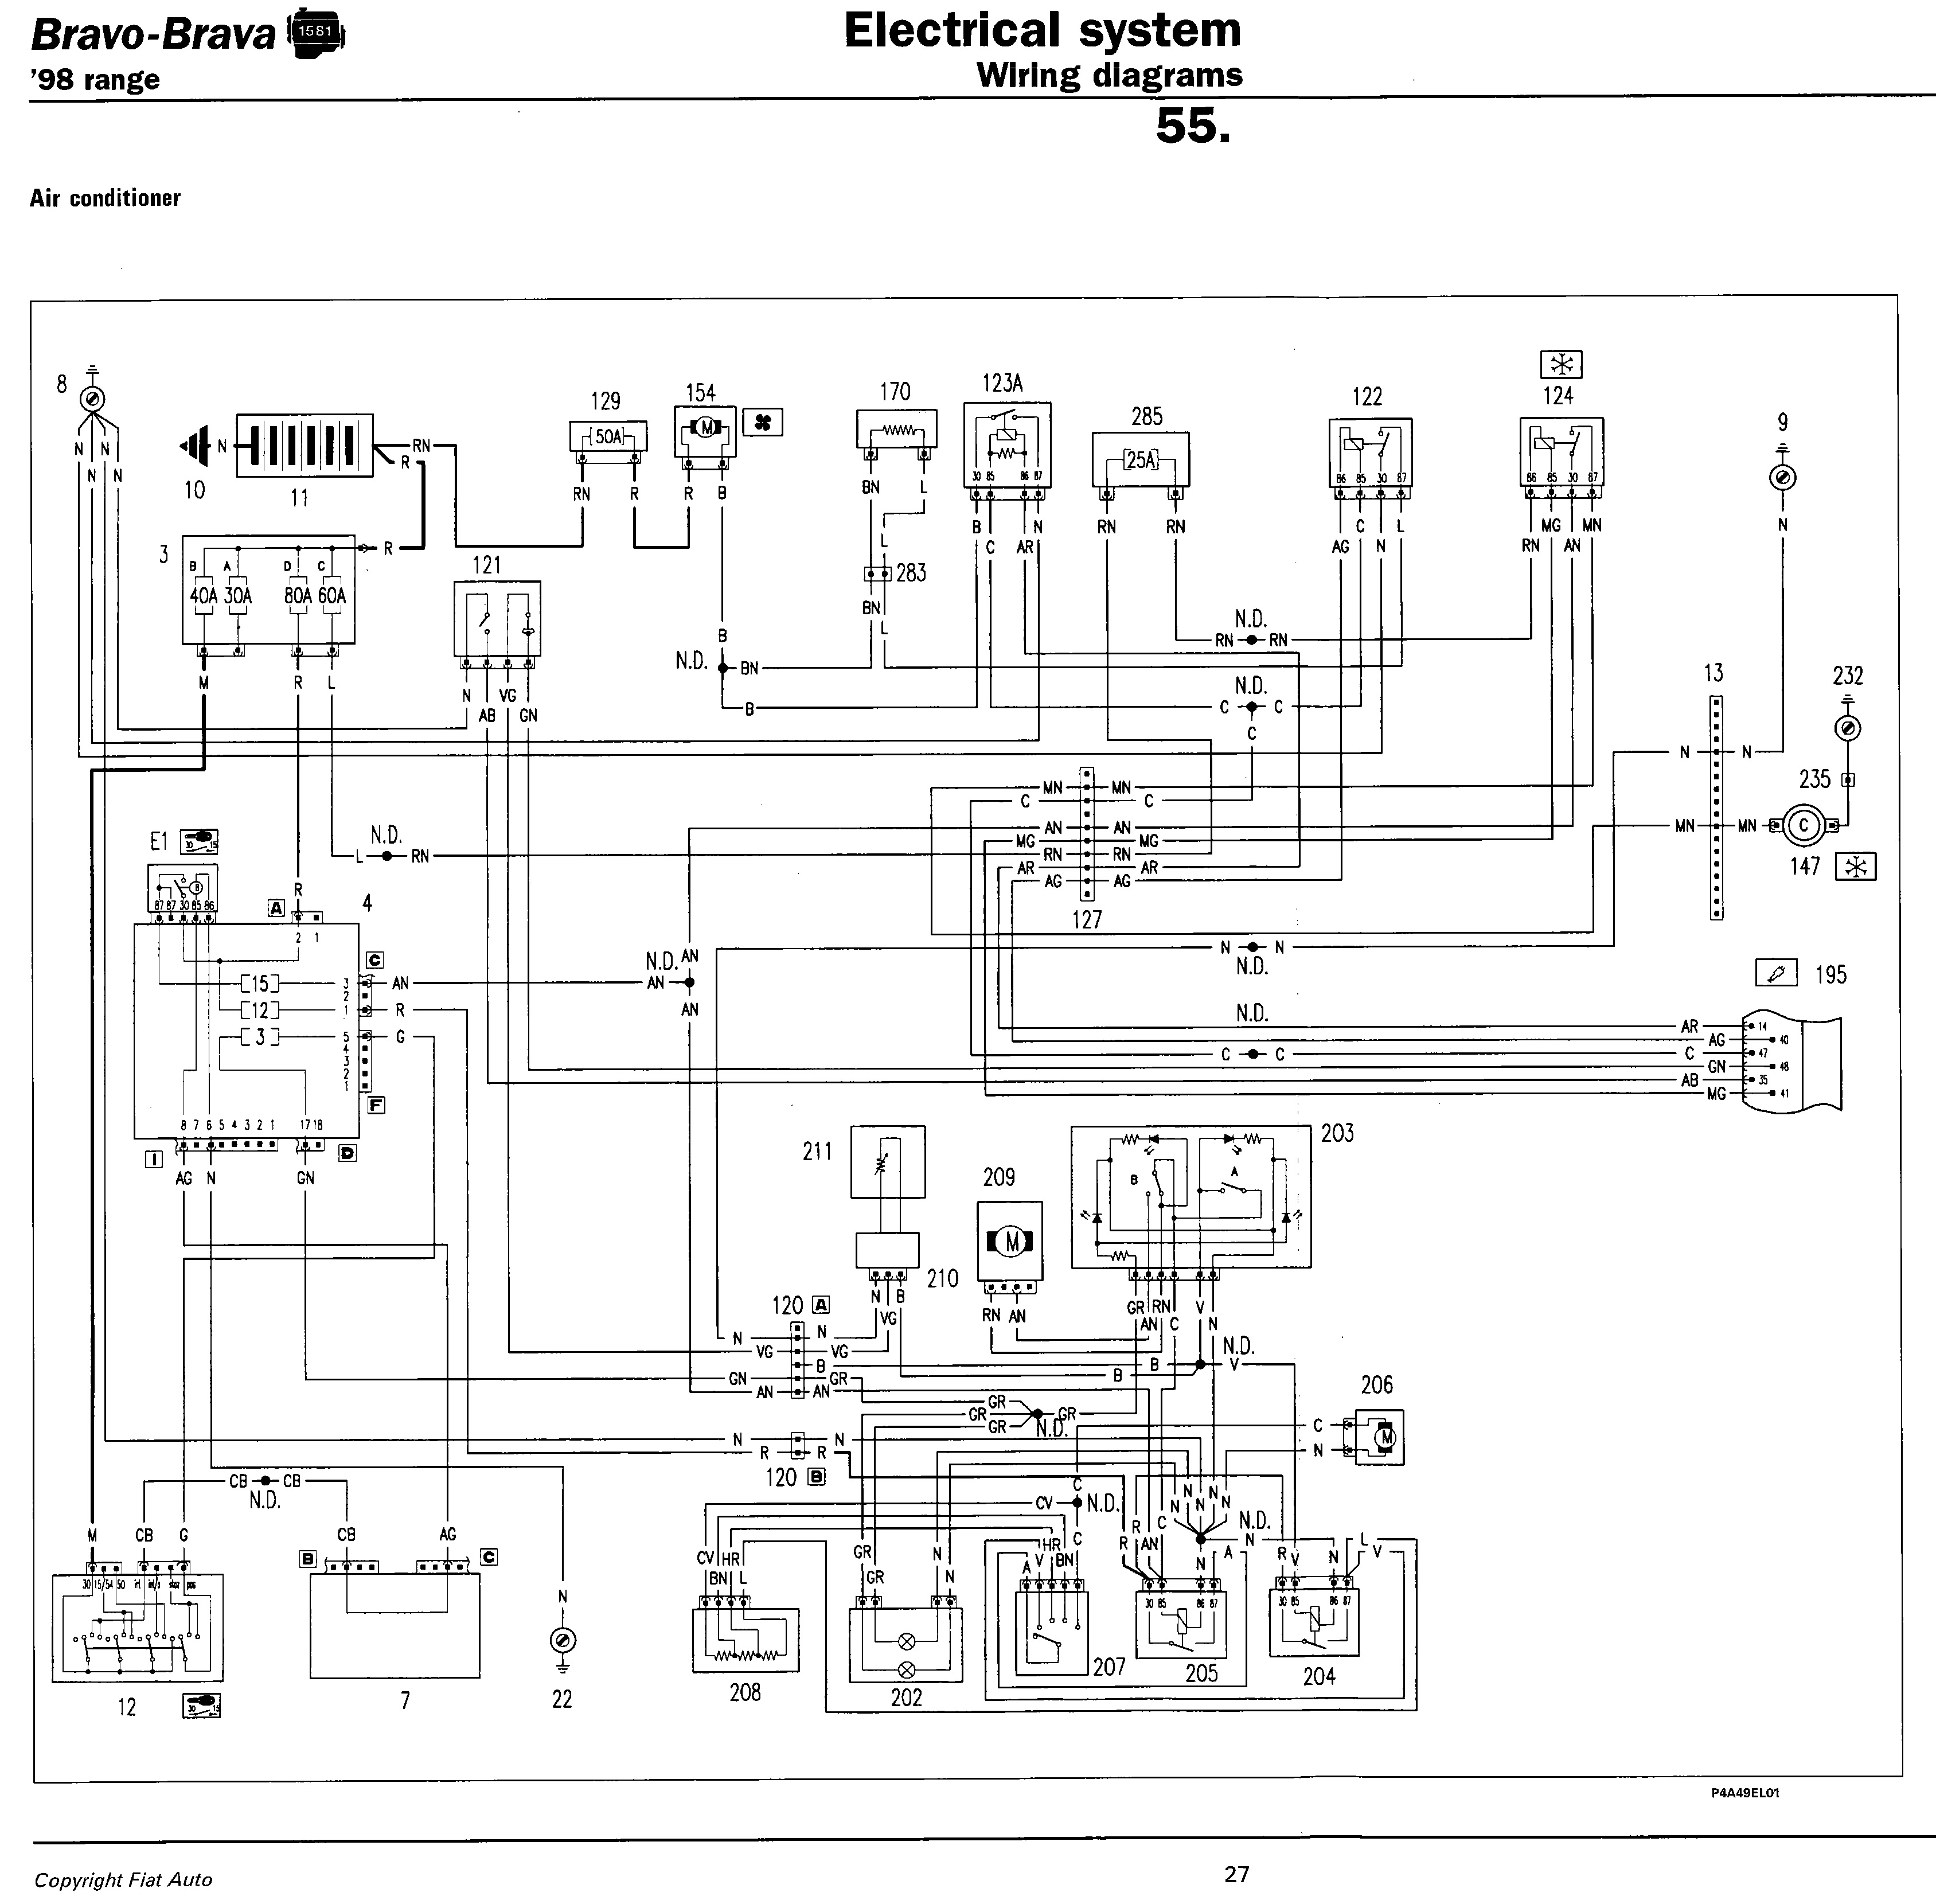 small resolution of 79 fiat 124 schematic wiring diagram 79 fiat spider wiring diagram my wiring diagram79 fiat 124